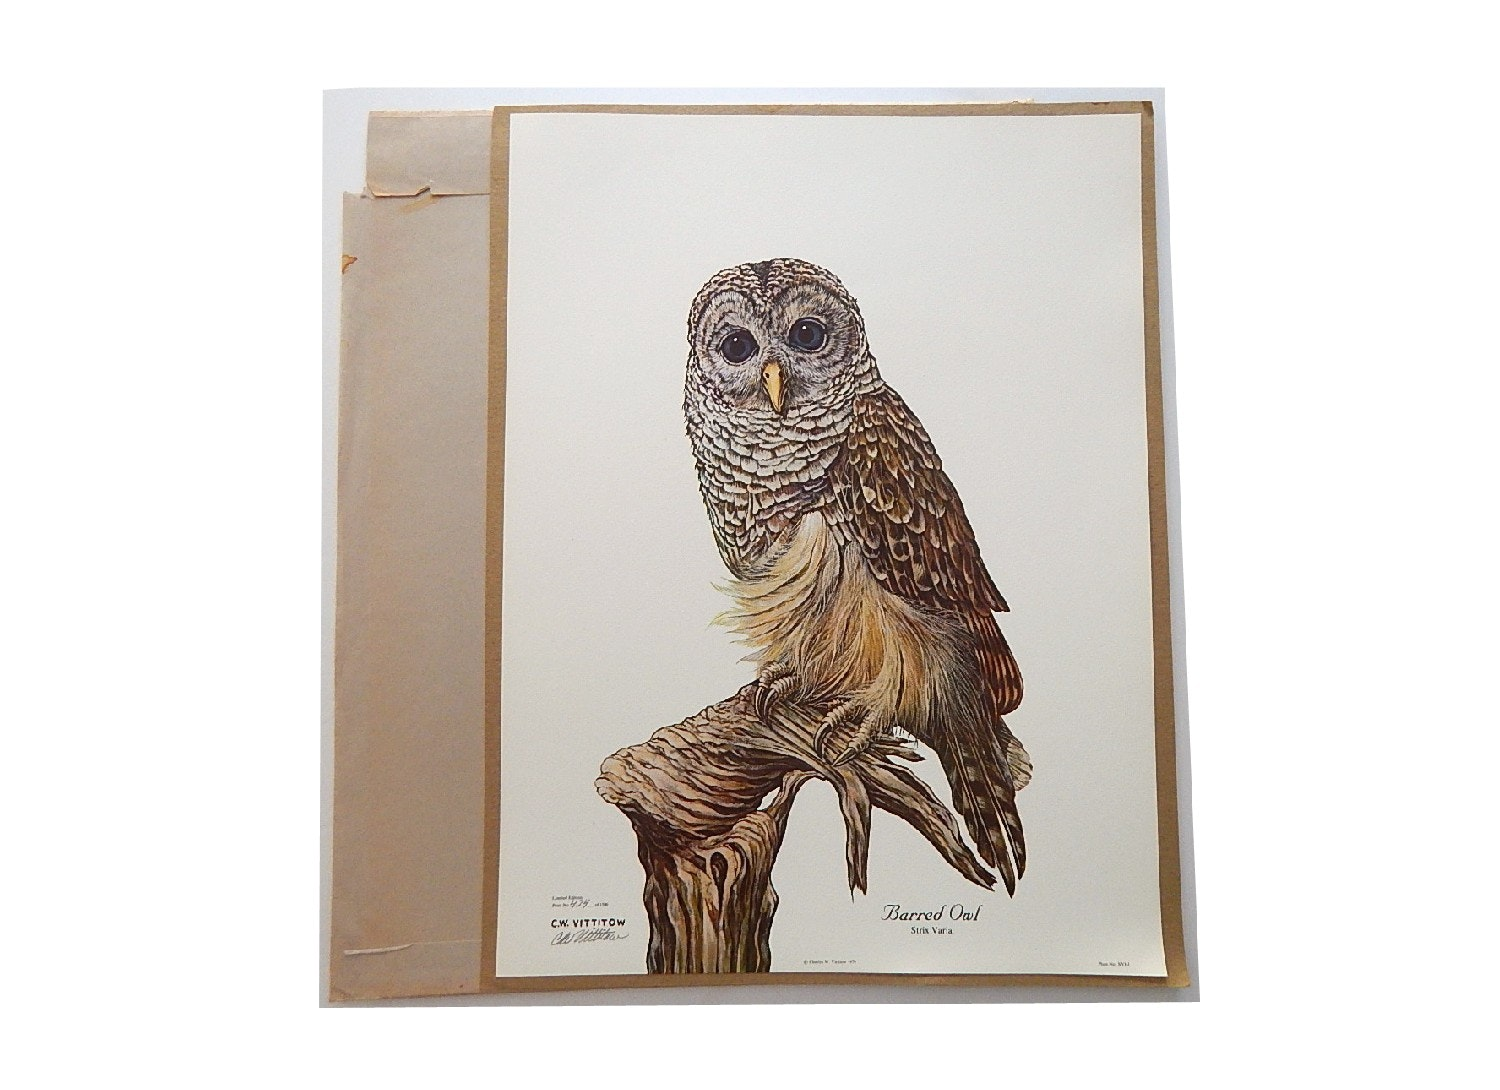 "Unframed 1979 C.W. Vittitow ""Barred Owl"" Signed Limited Offset Lithograph Print"